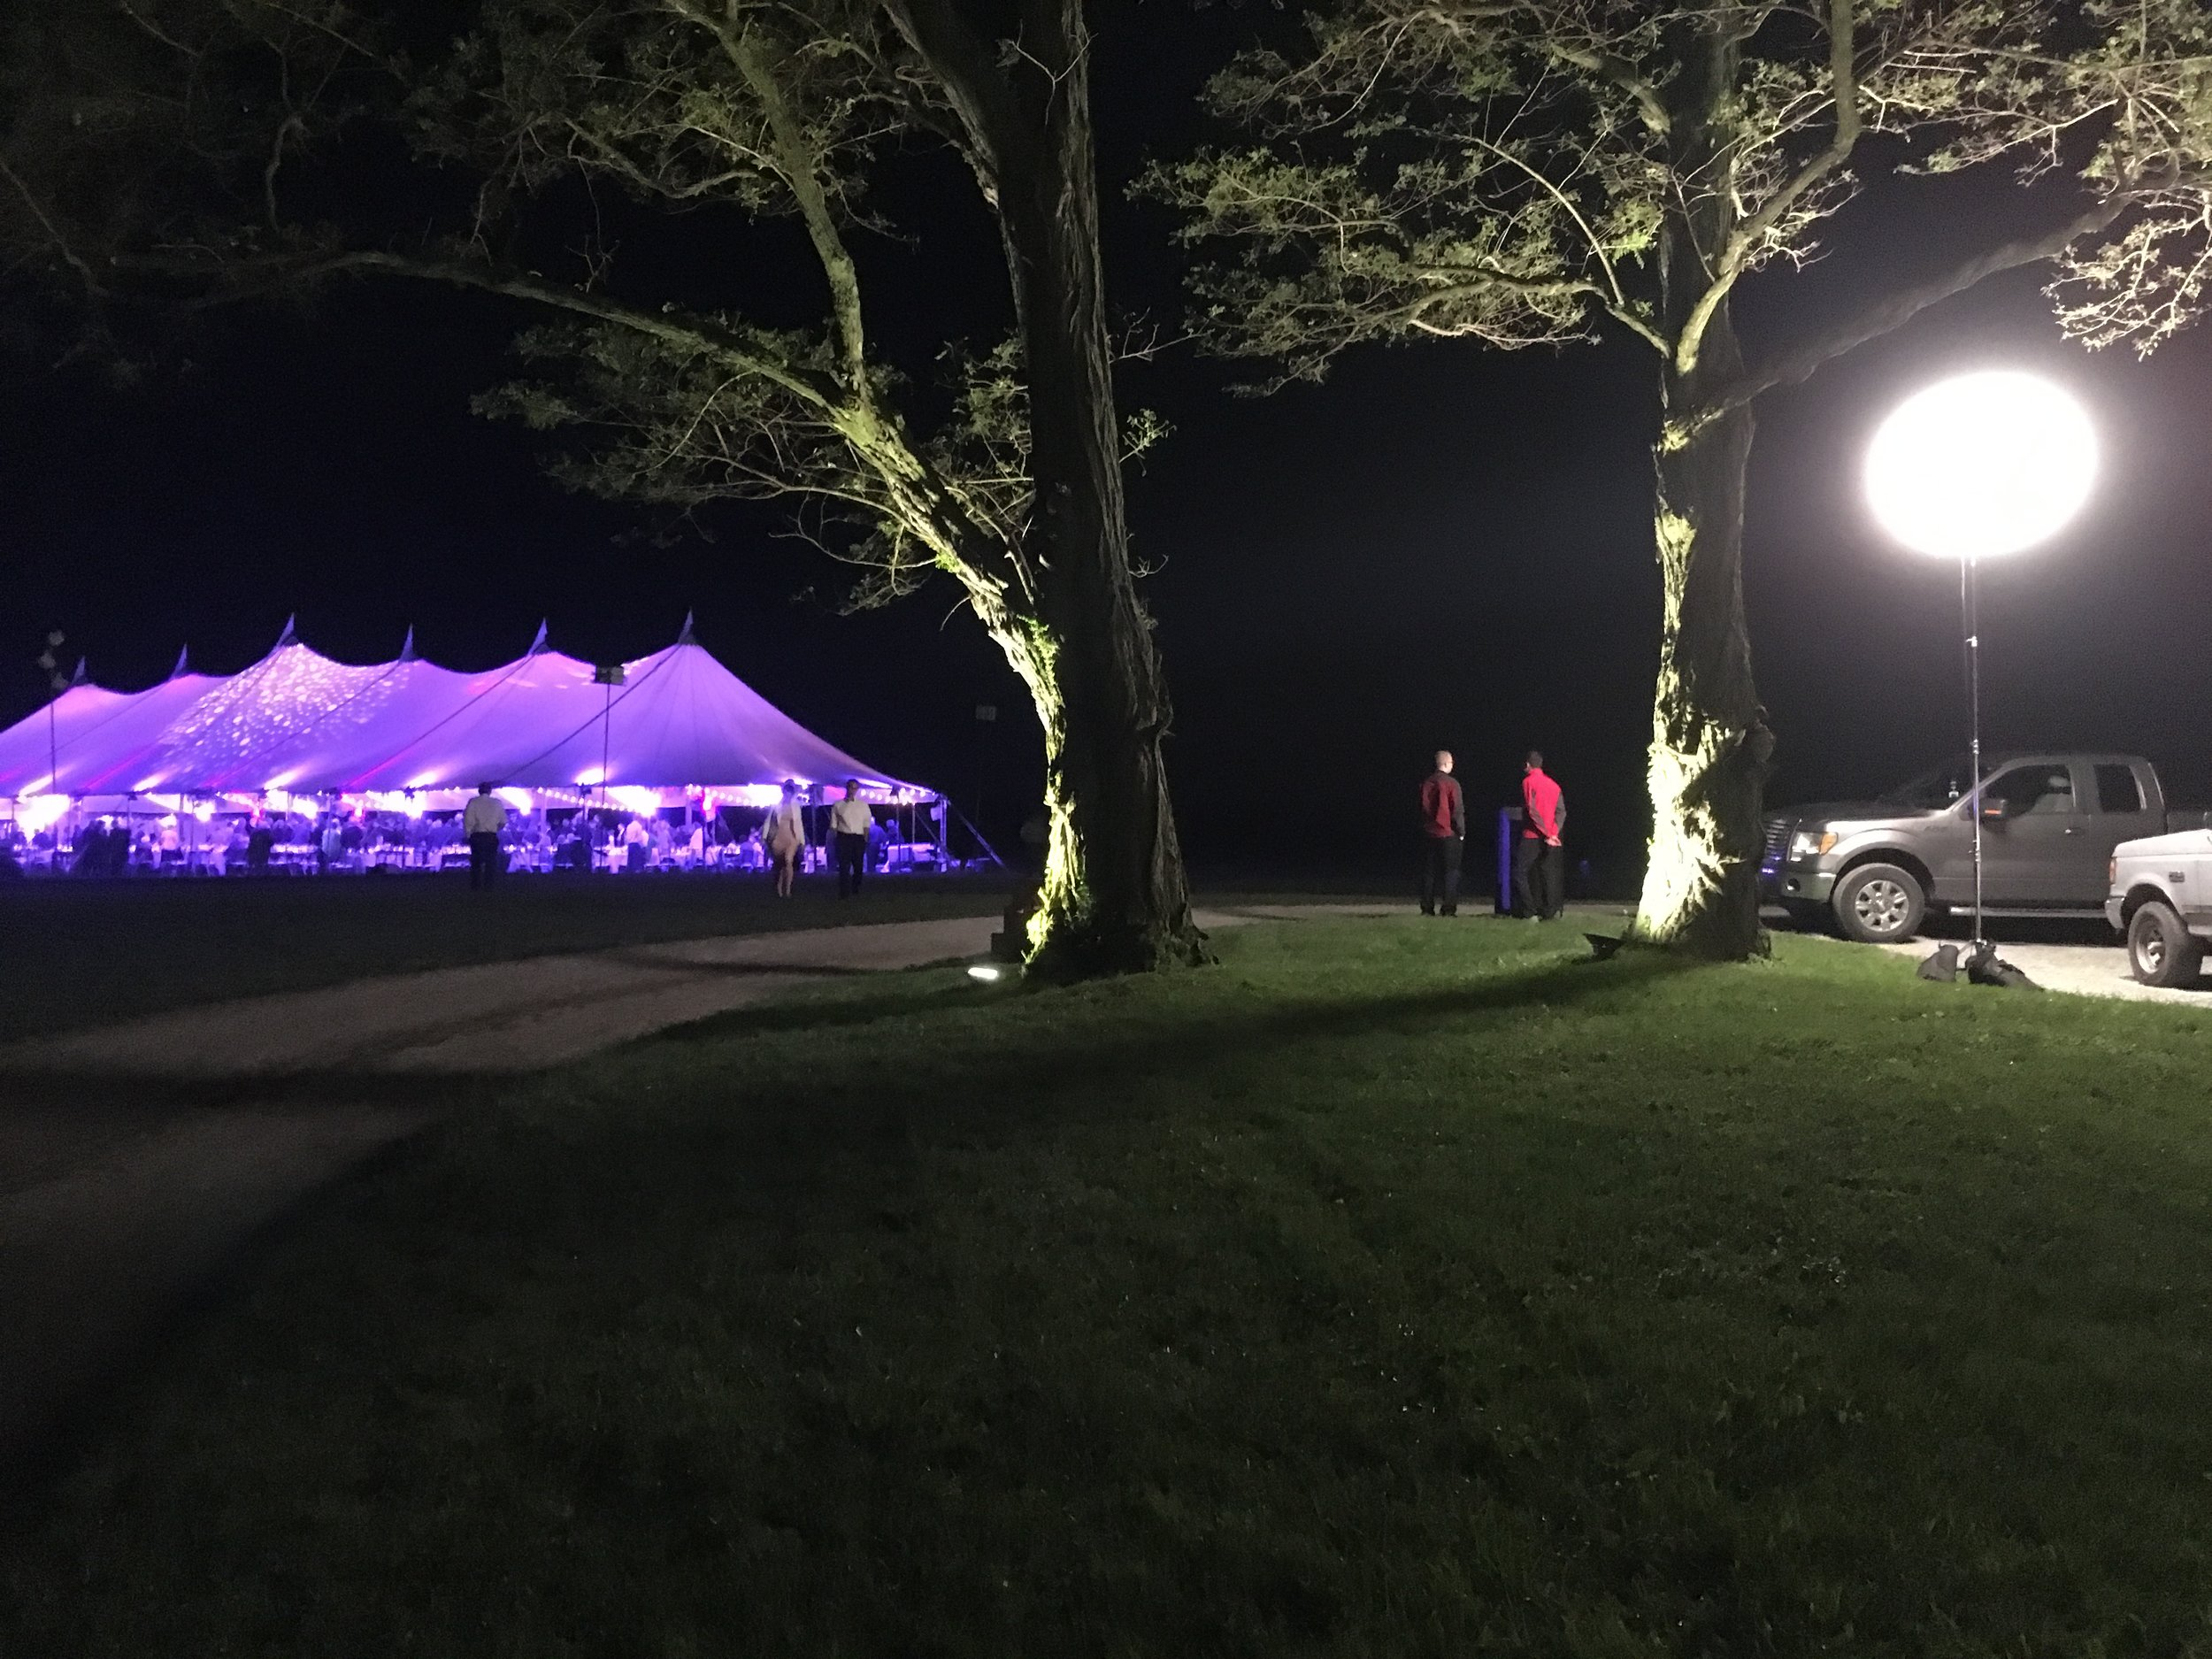 moonlite-event-area-safety-lighting-